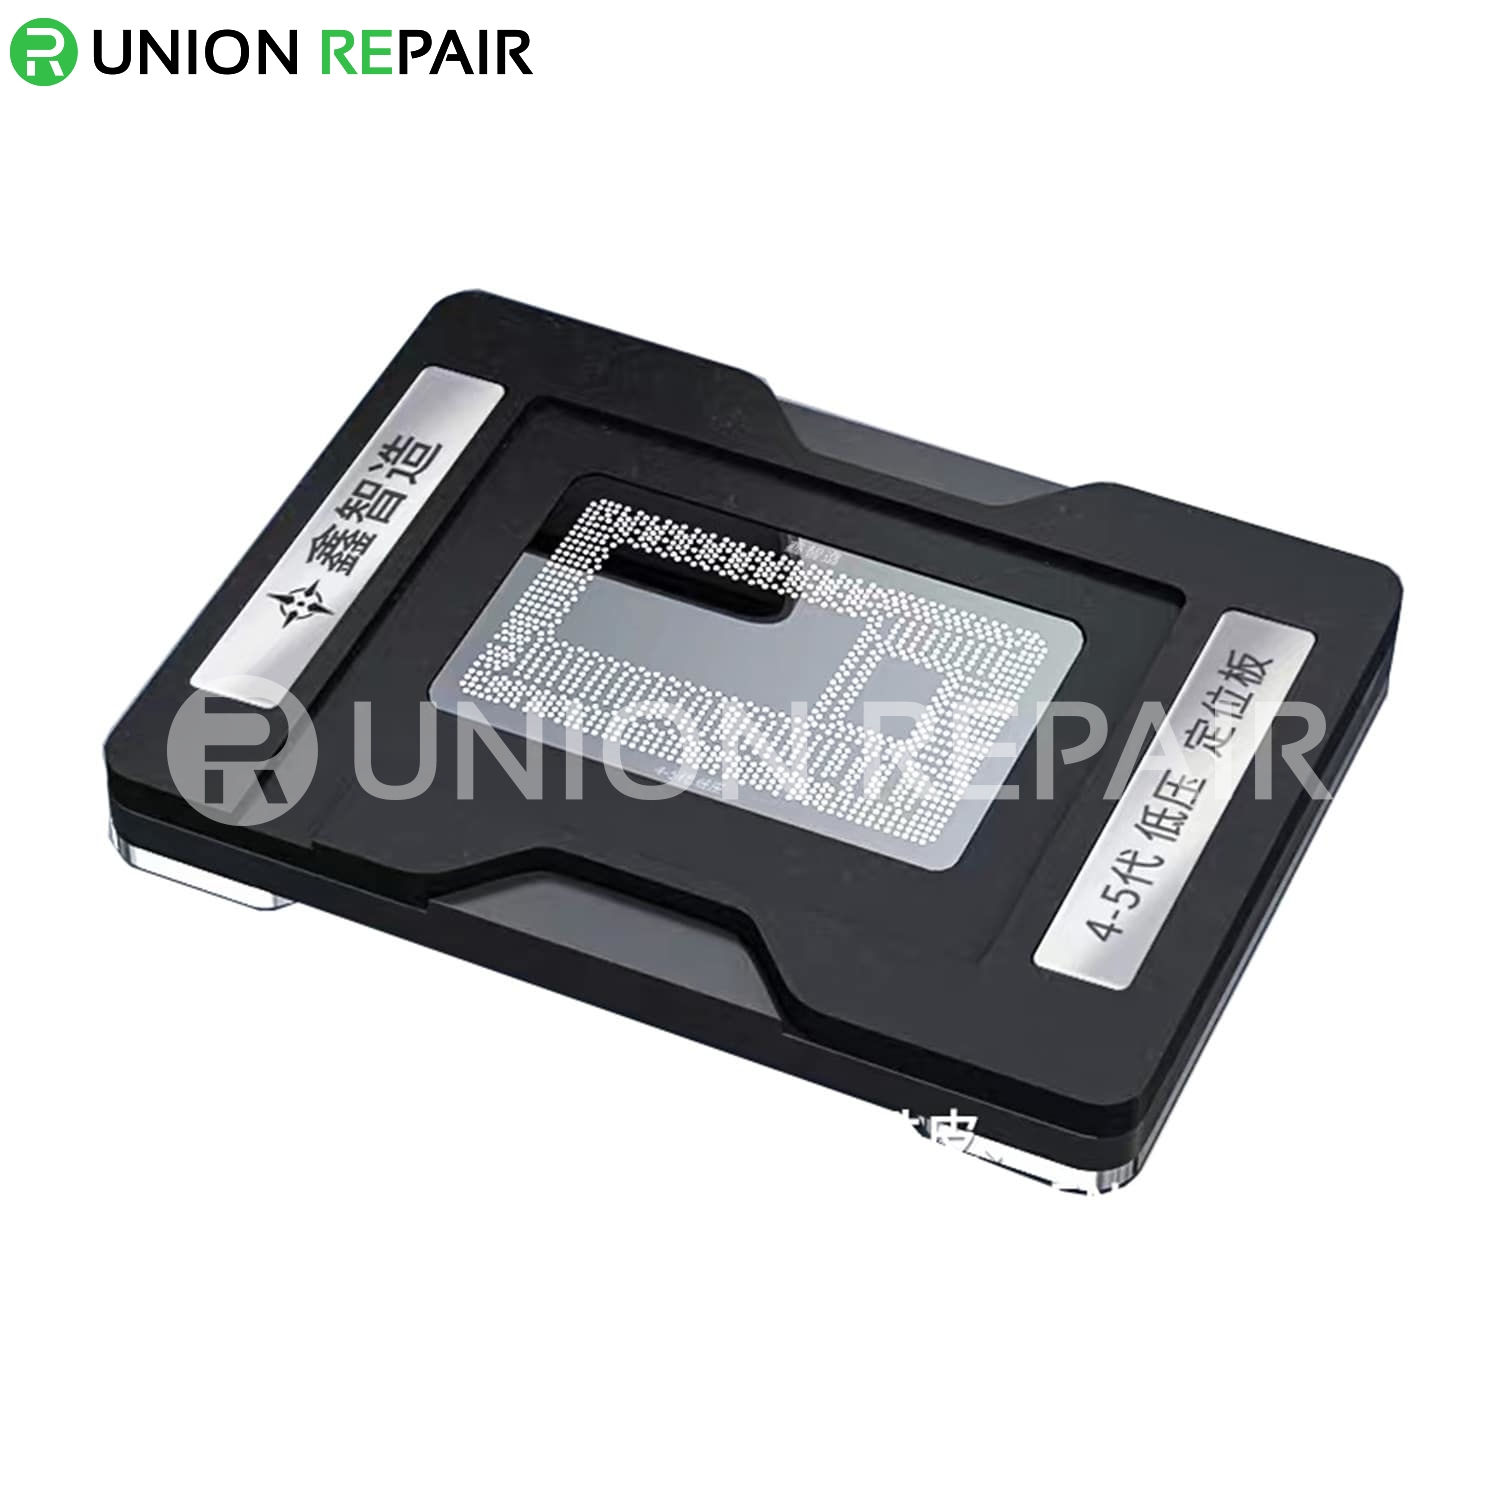 XinZhiZao CPU Reballing Stencil Kit for Notebook Chips Repair